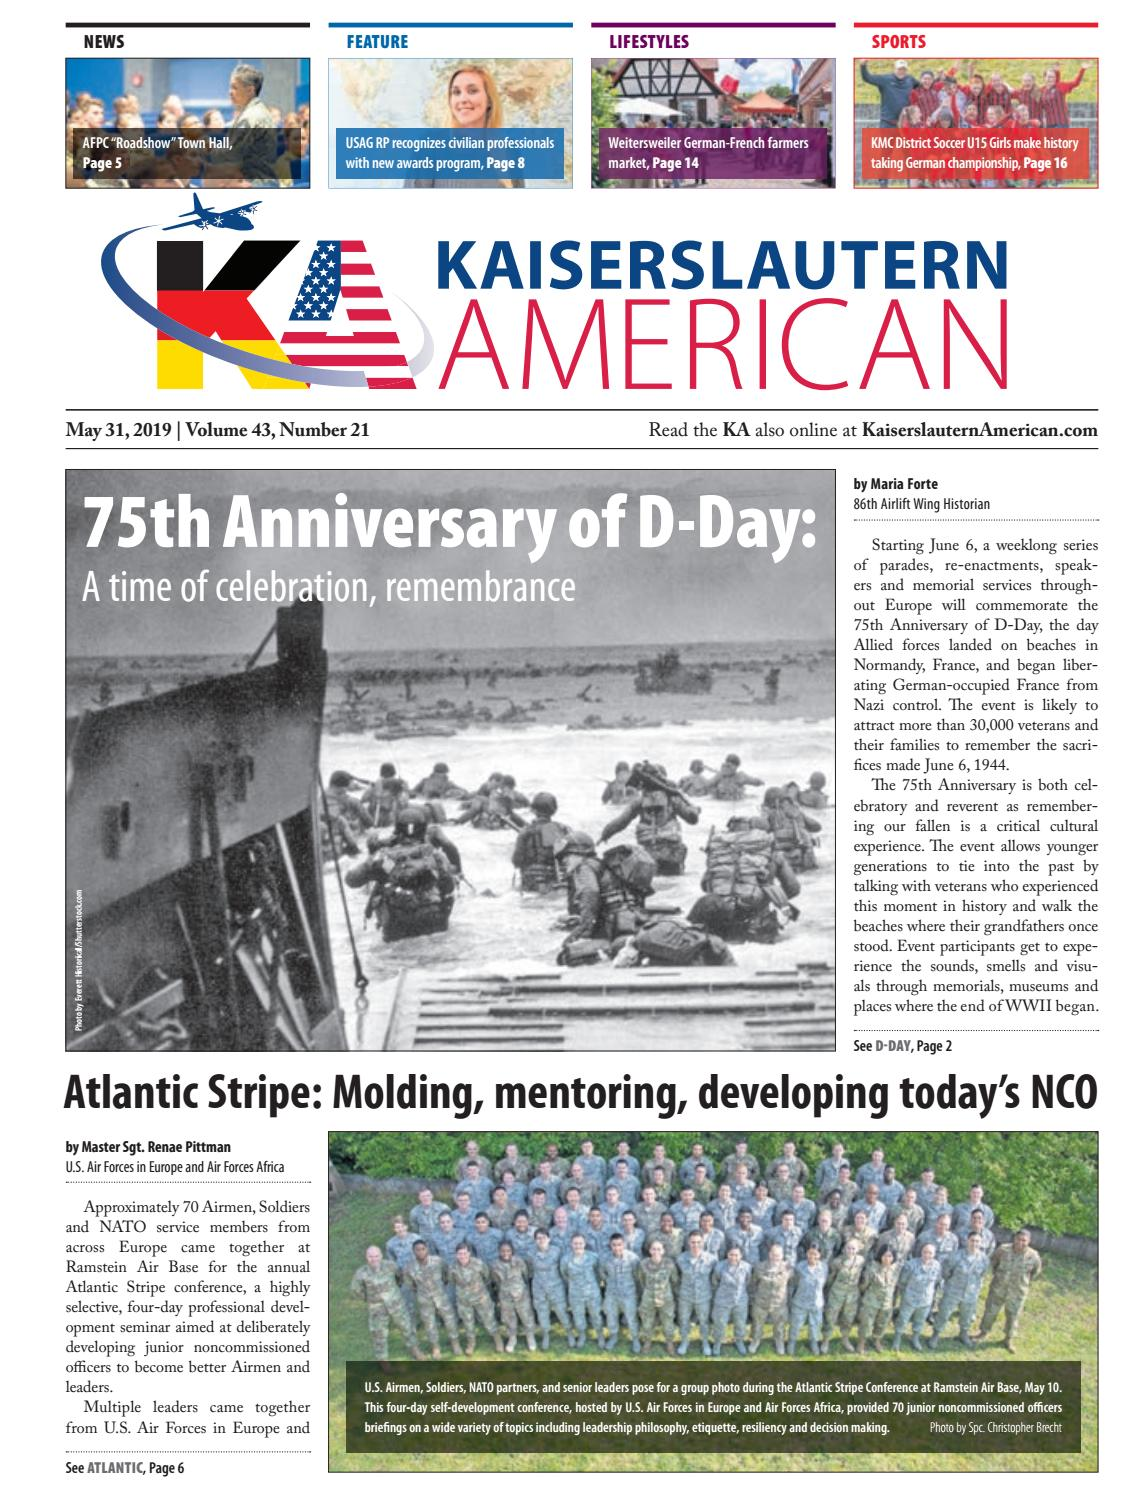 Kaiserslautern American — May 31, 2019 by AdvantiPro GmbH